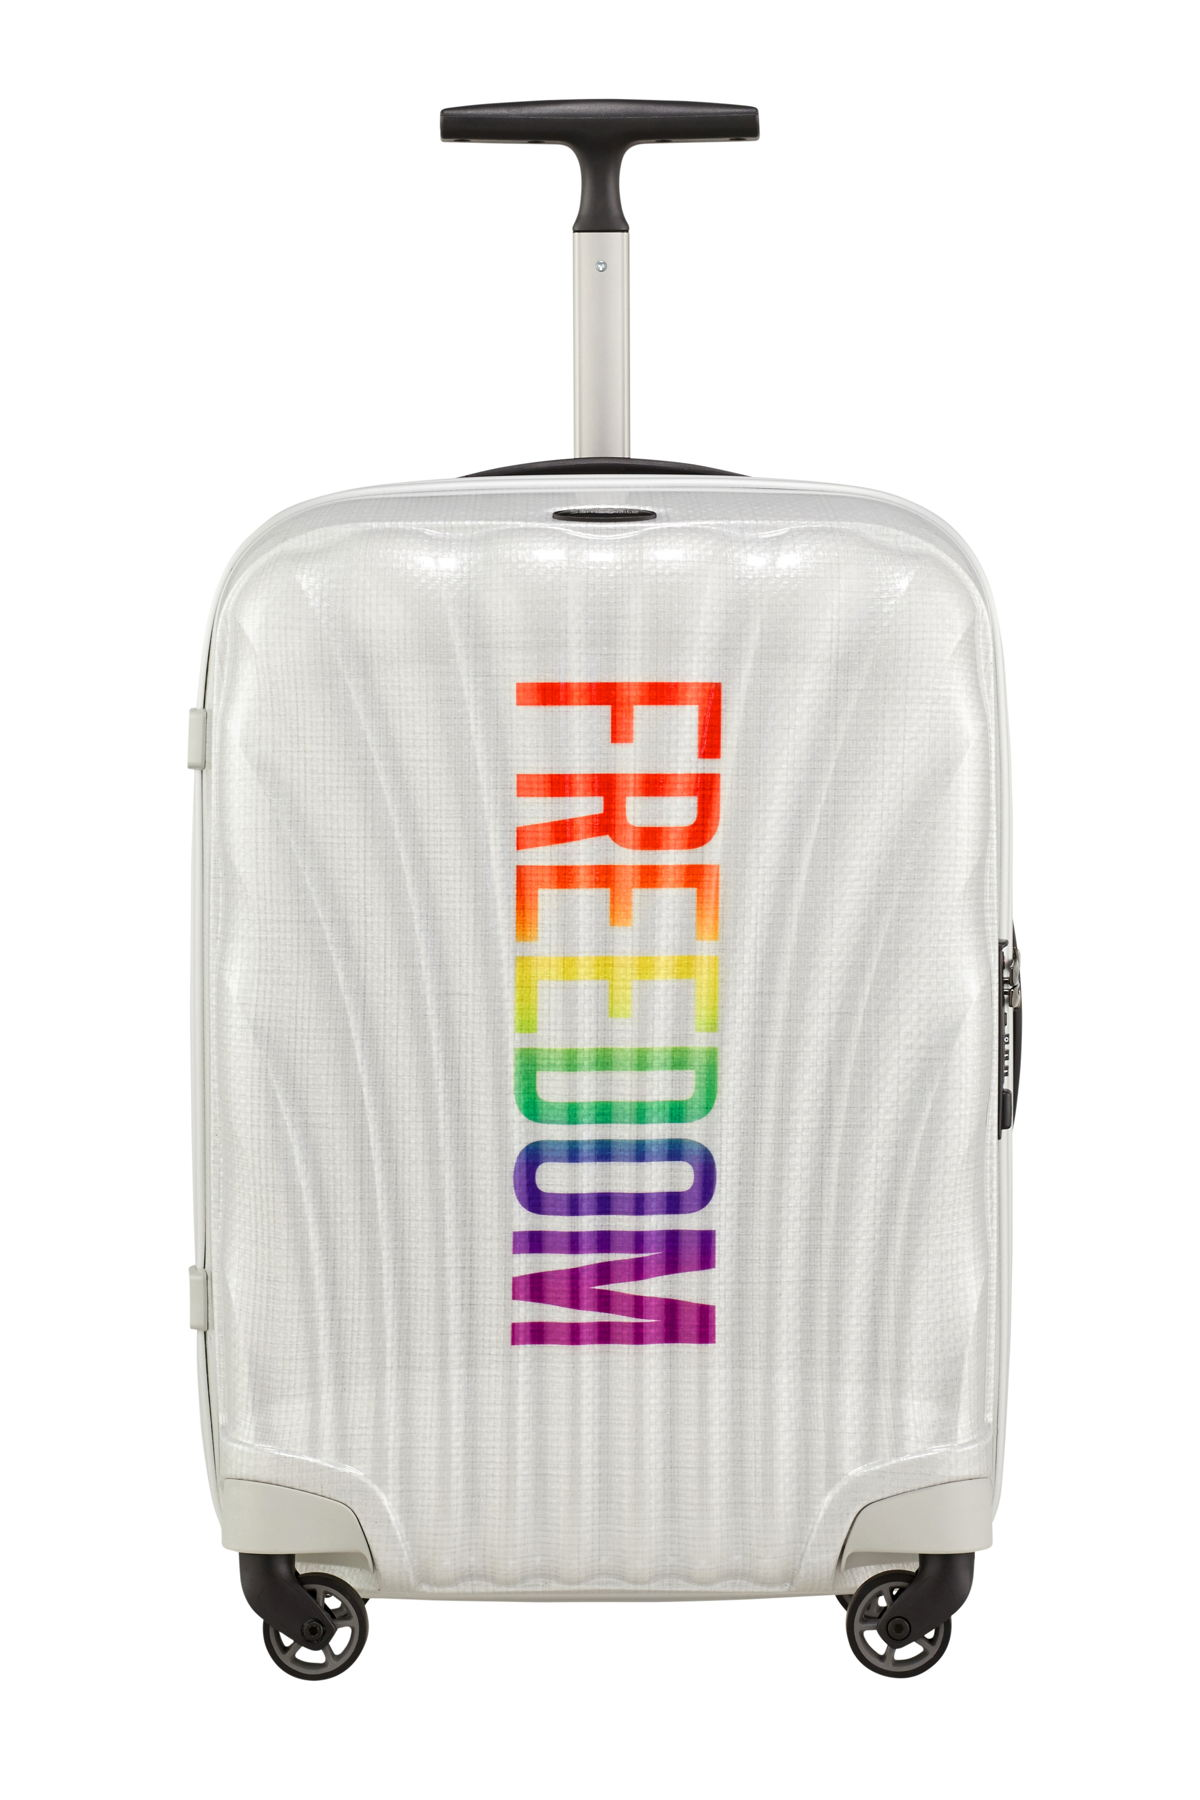 Samsonite - Cosmolite - Limited Edition 'Freedom'